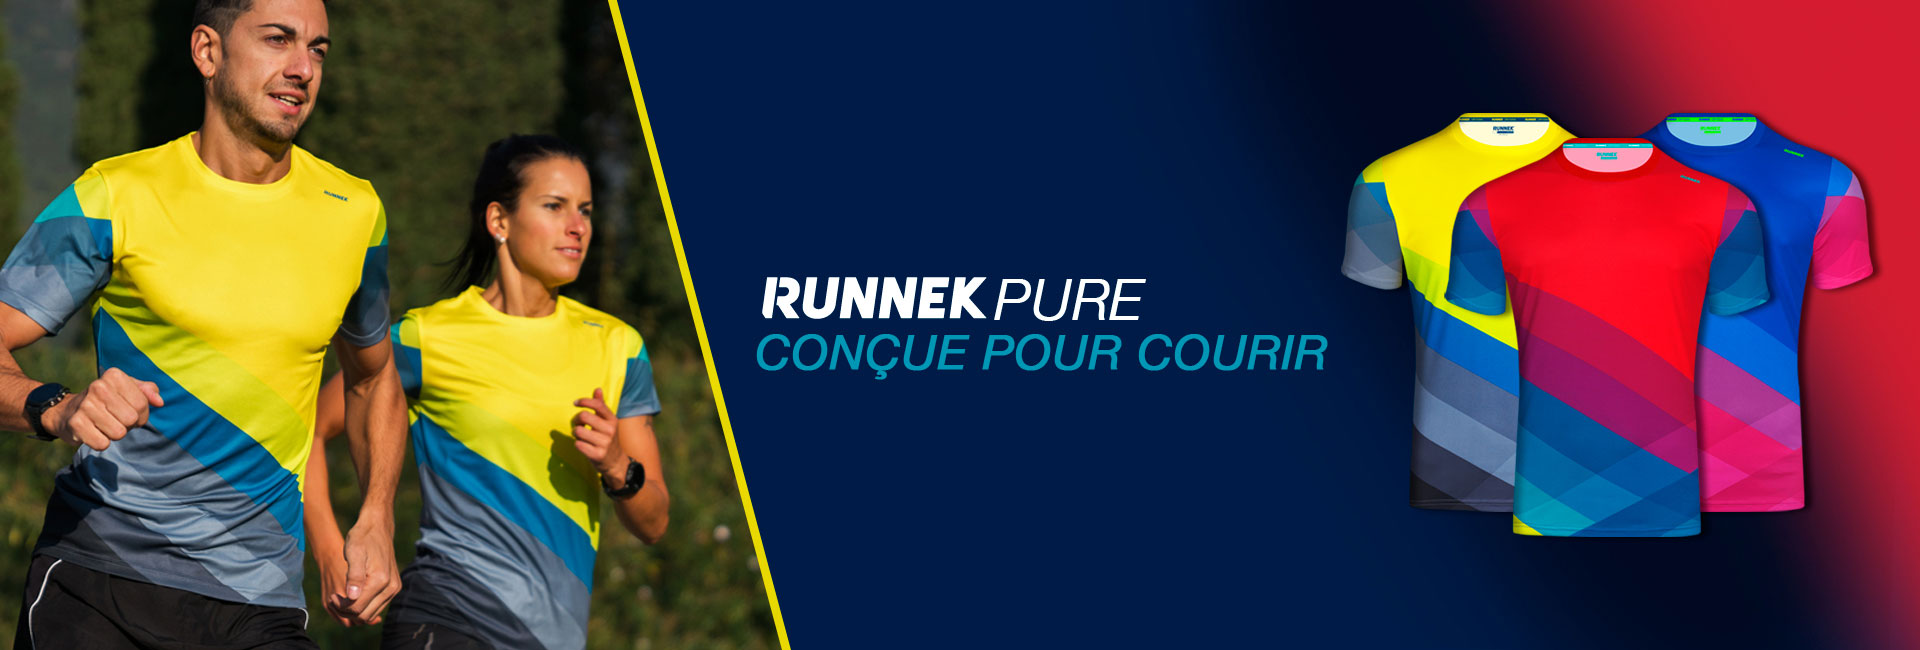 Runnek Pure